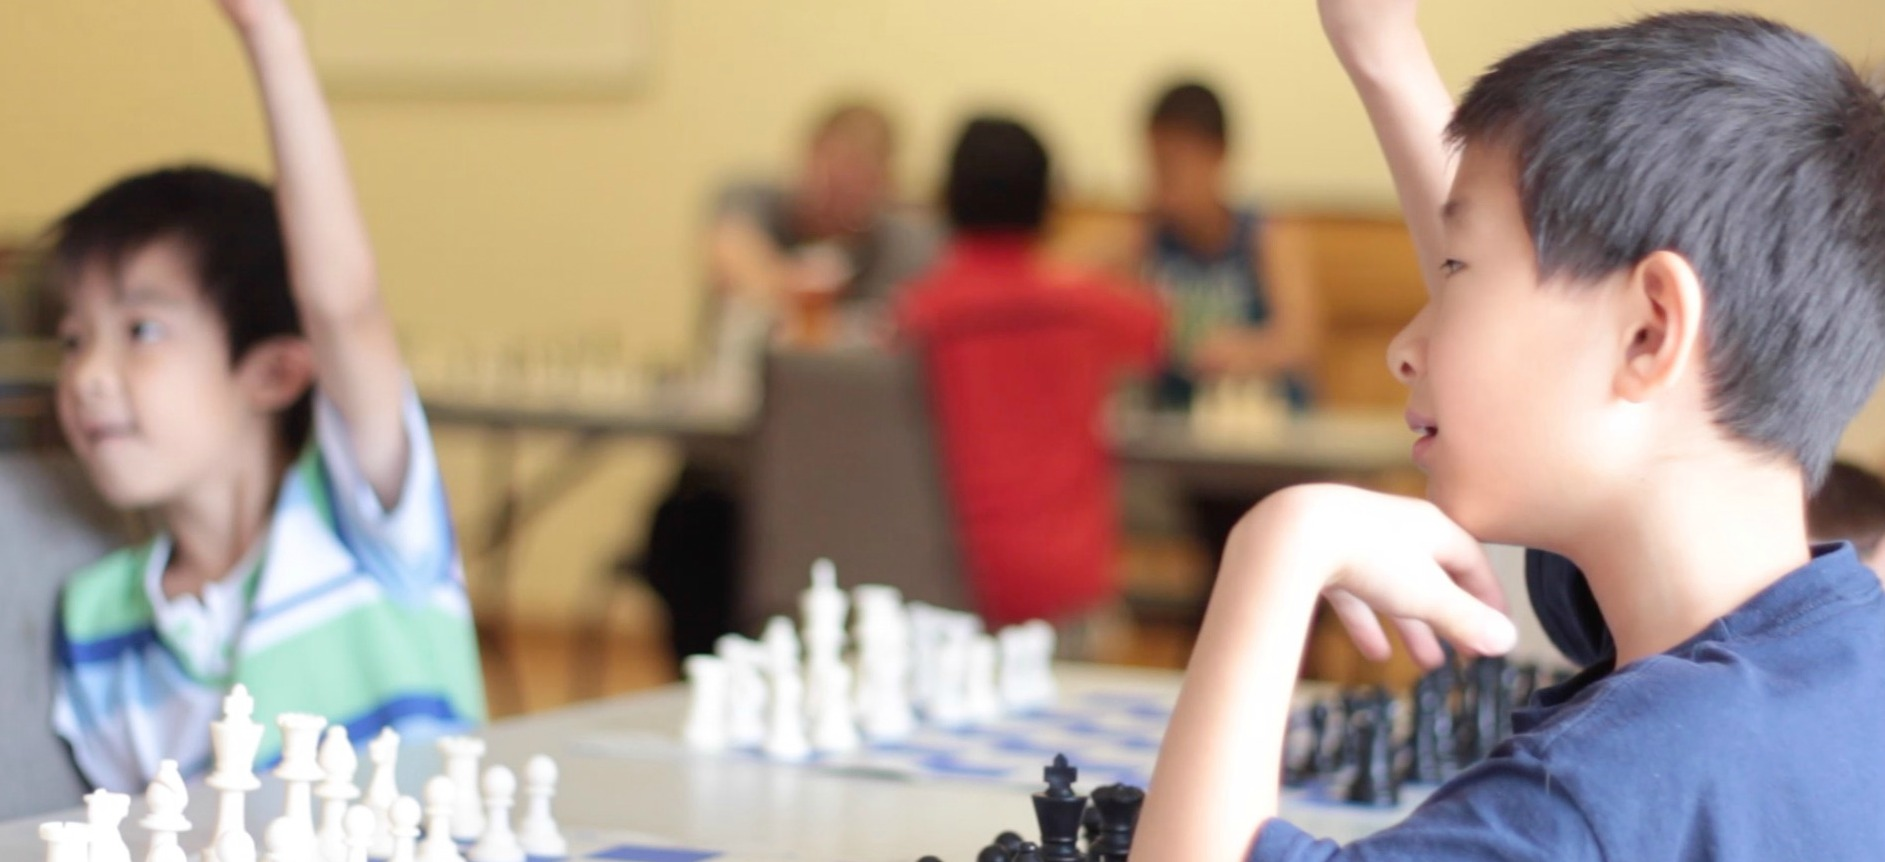 kids learning chess